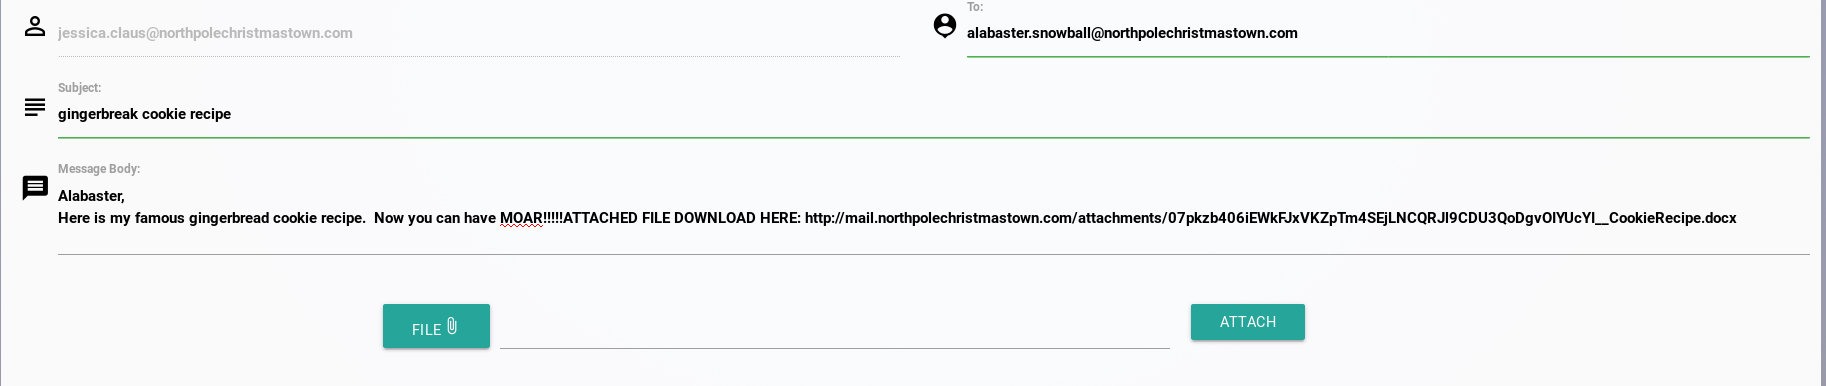 alabaster_phish